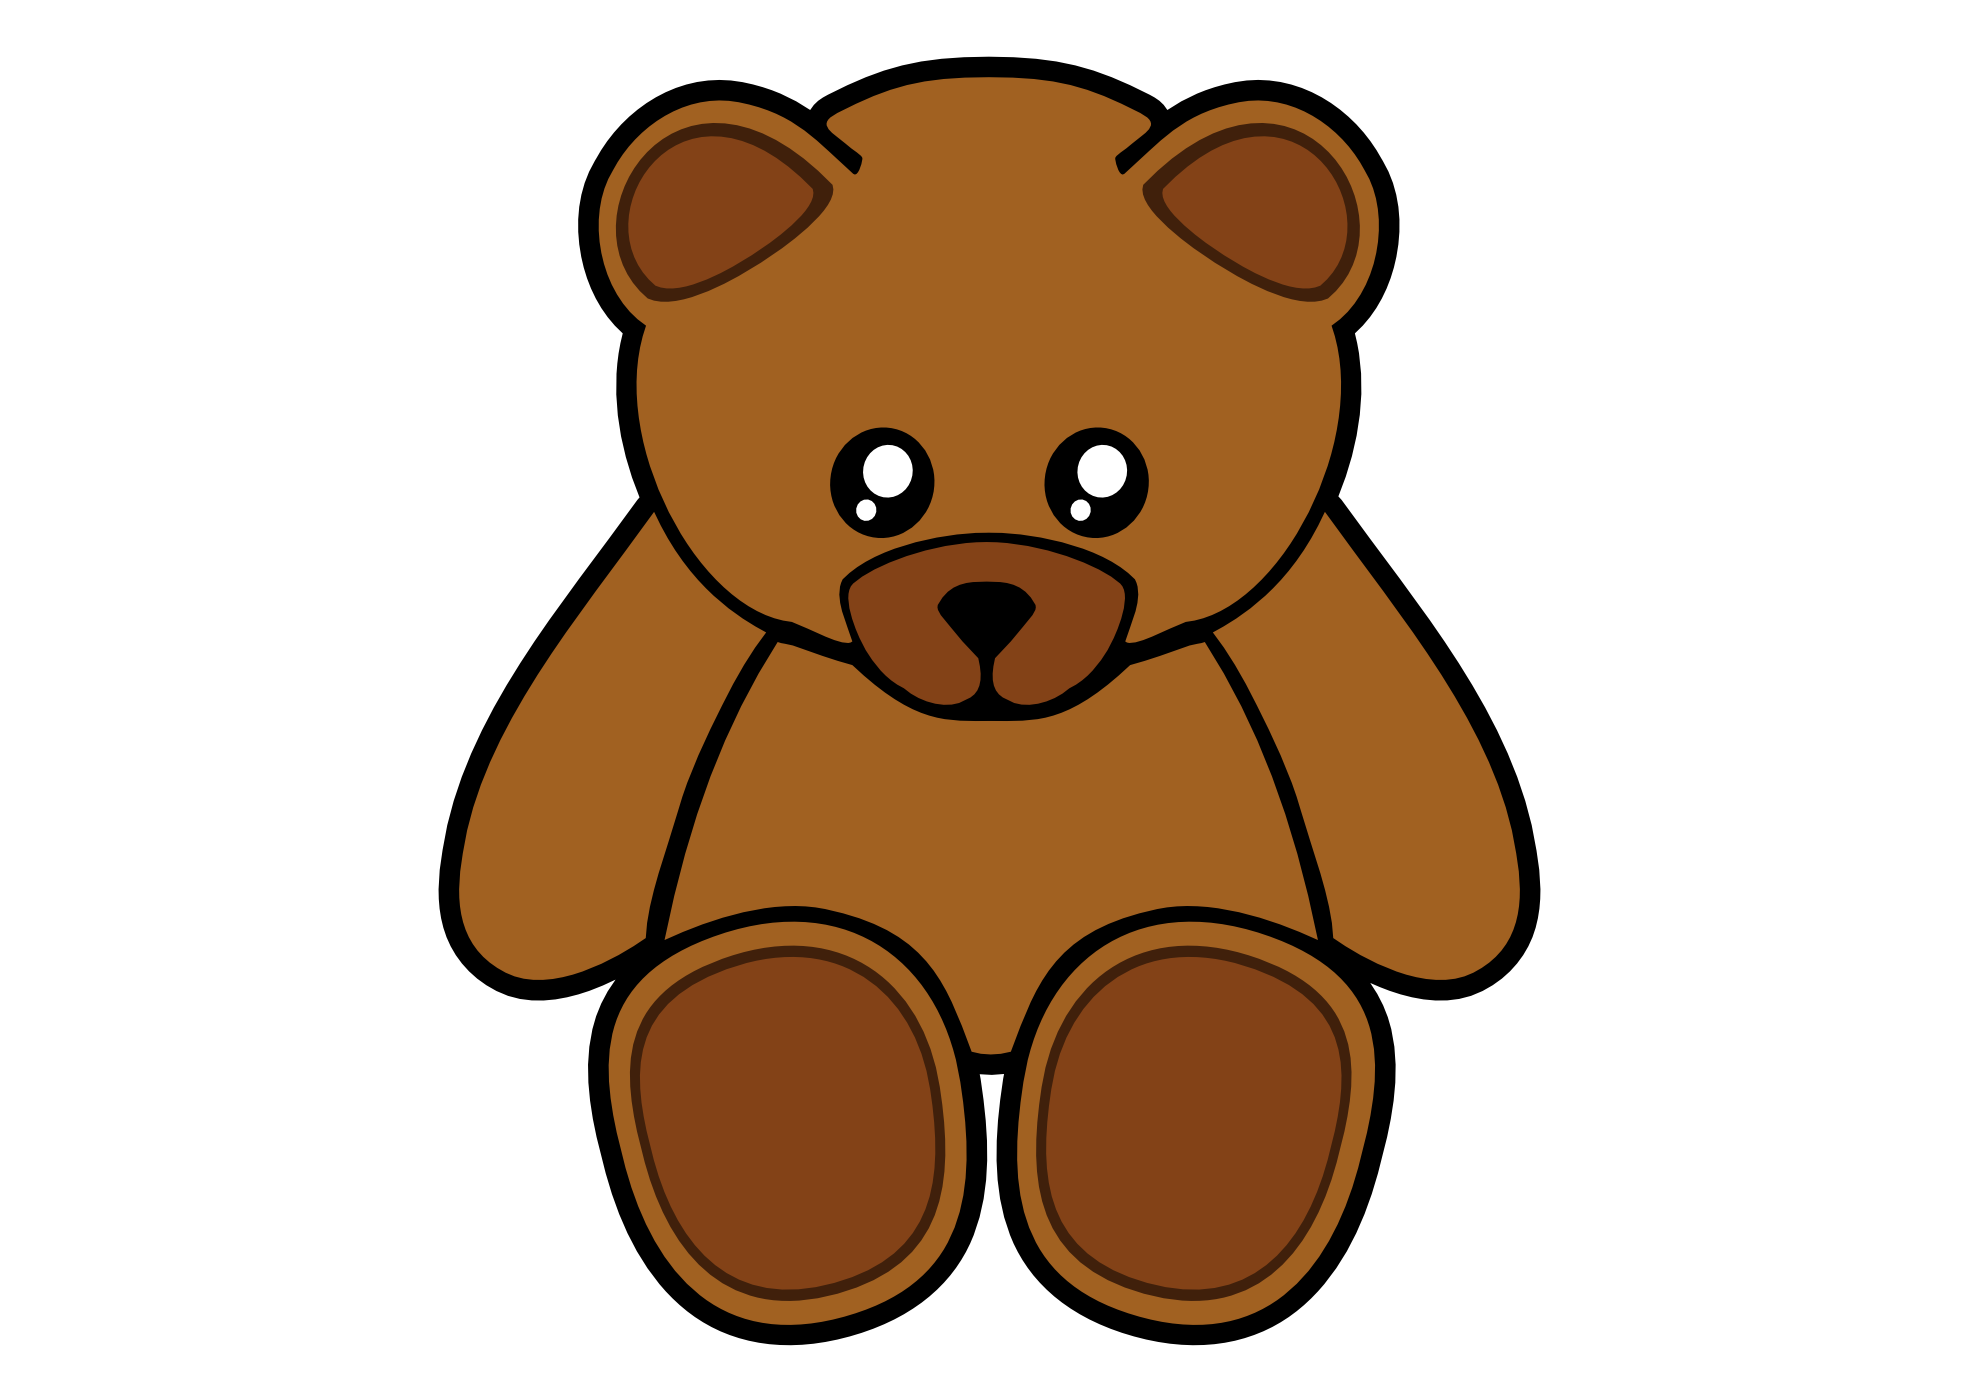 Brown Bear clipart teddy bear Teddy clipart tatty on Teddy